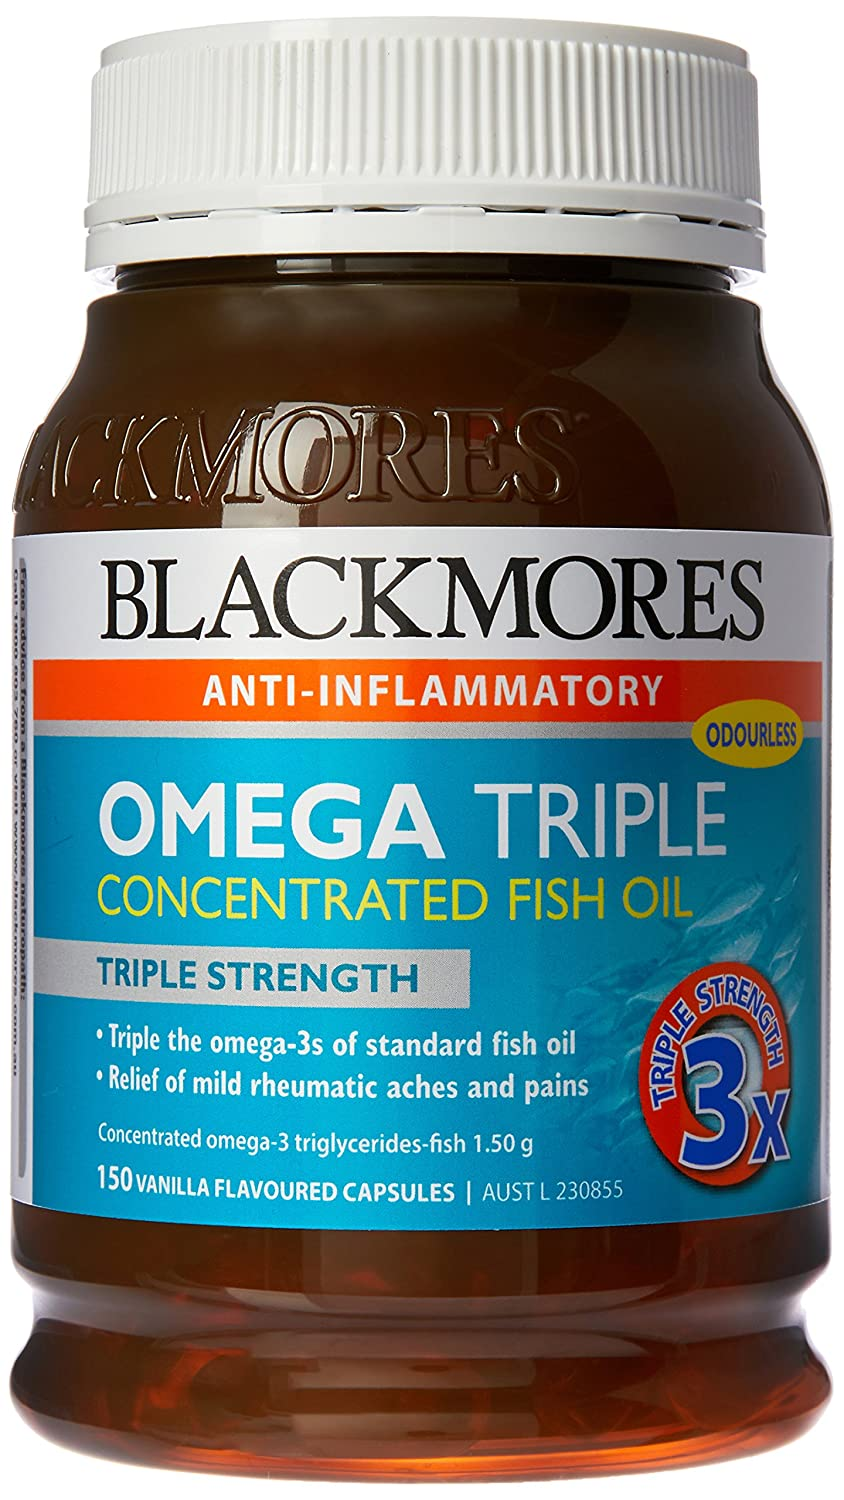 Blackmores Omega Triple Concentrated Fish Oil 150 Capsules Amazon Total Calcium Magnesium D3 200 Tablet Health Personal Care